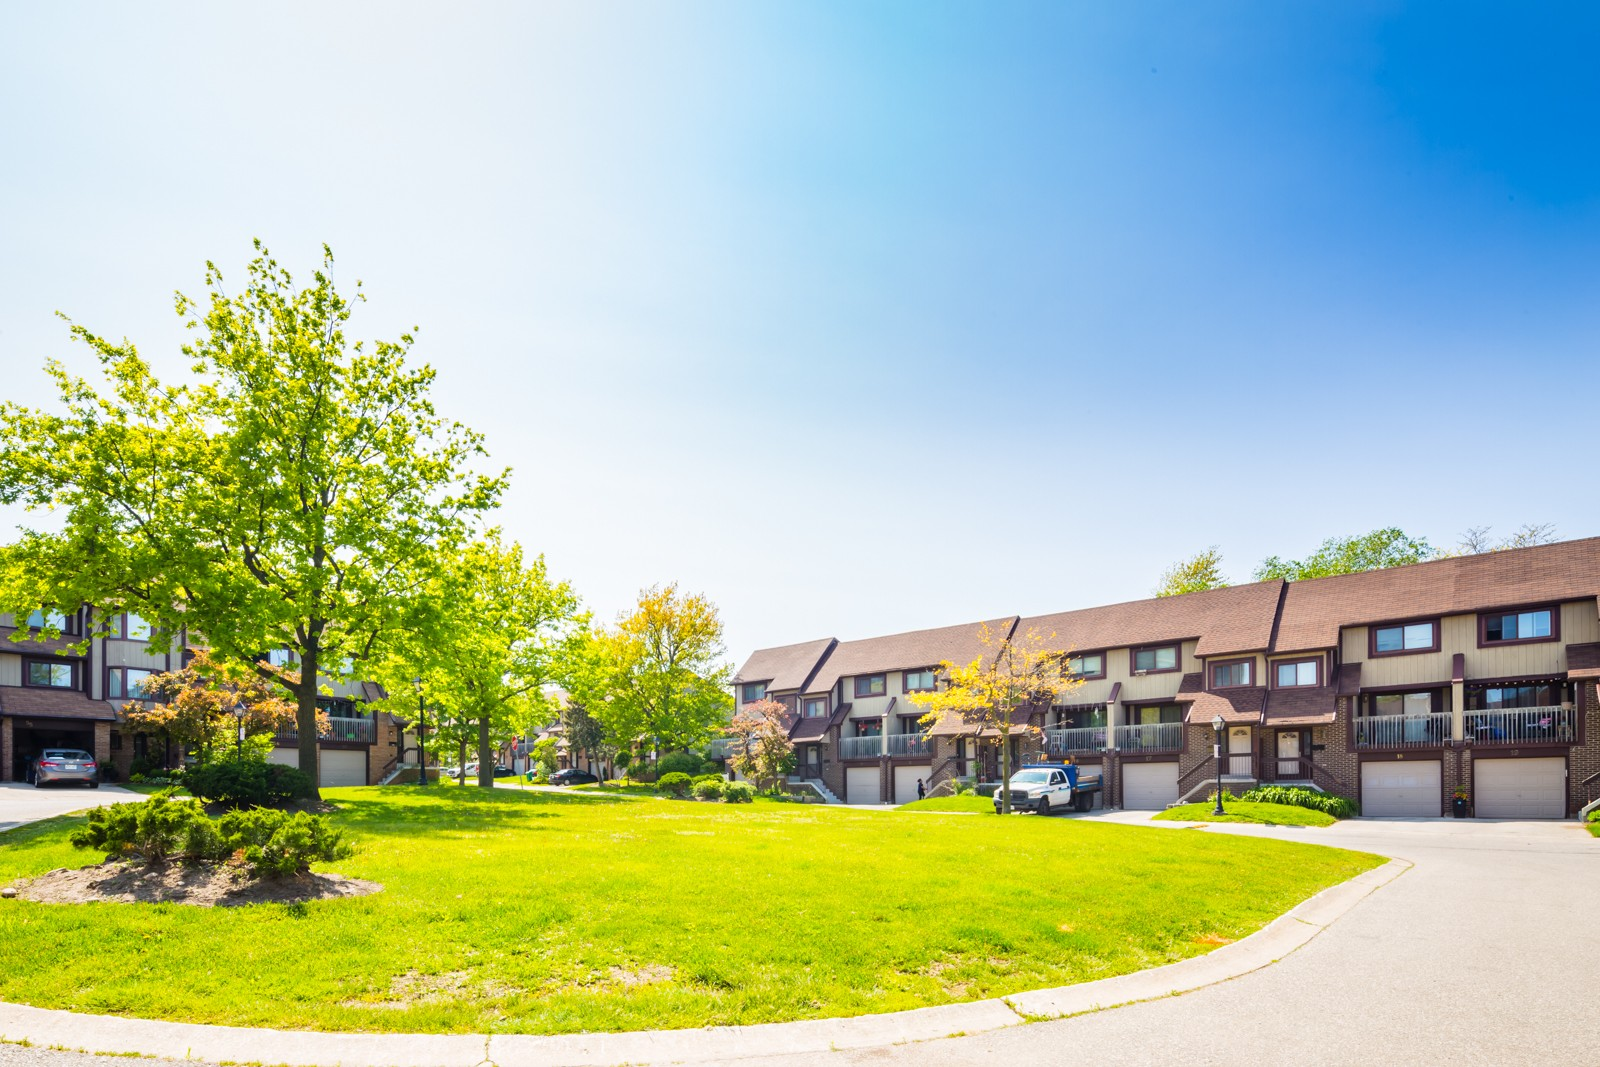 6780 Formentera Avenue Townhouses at 6780 Formentera Ave, Mississauga 1